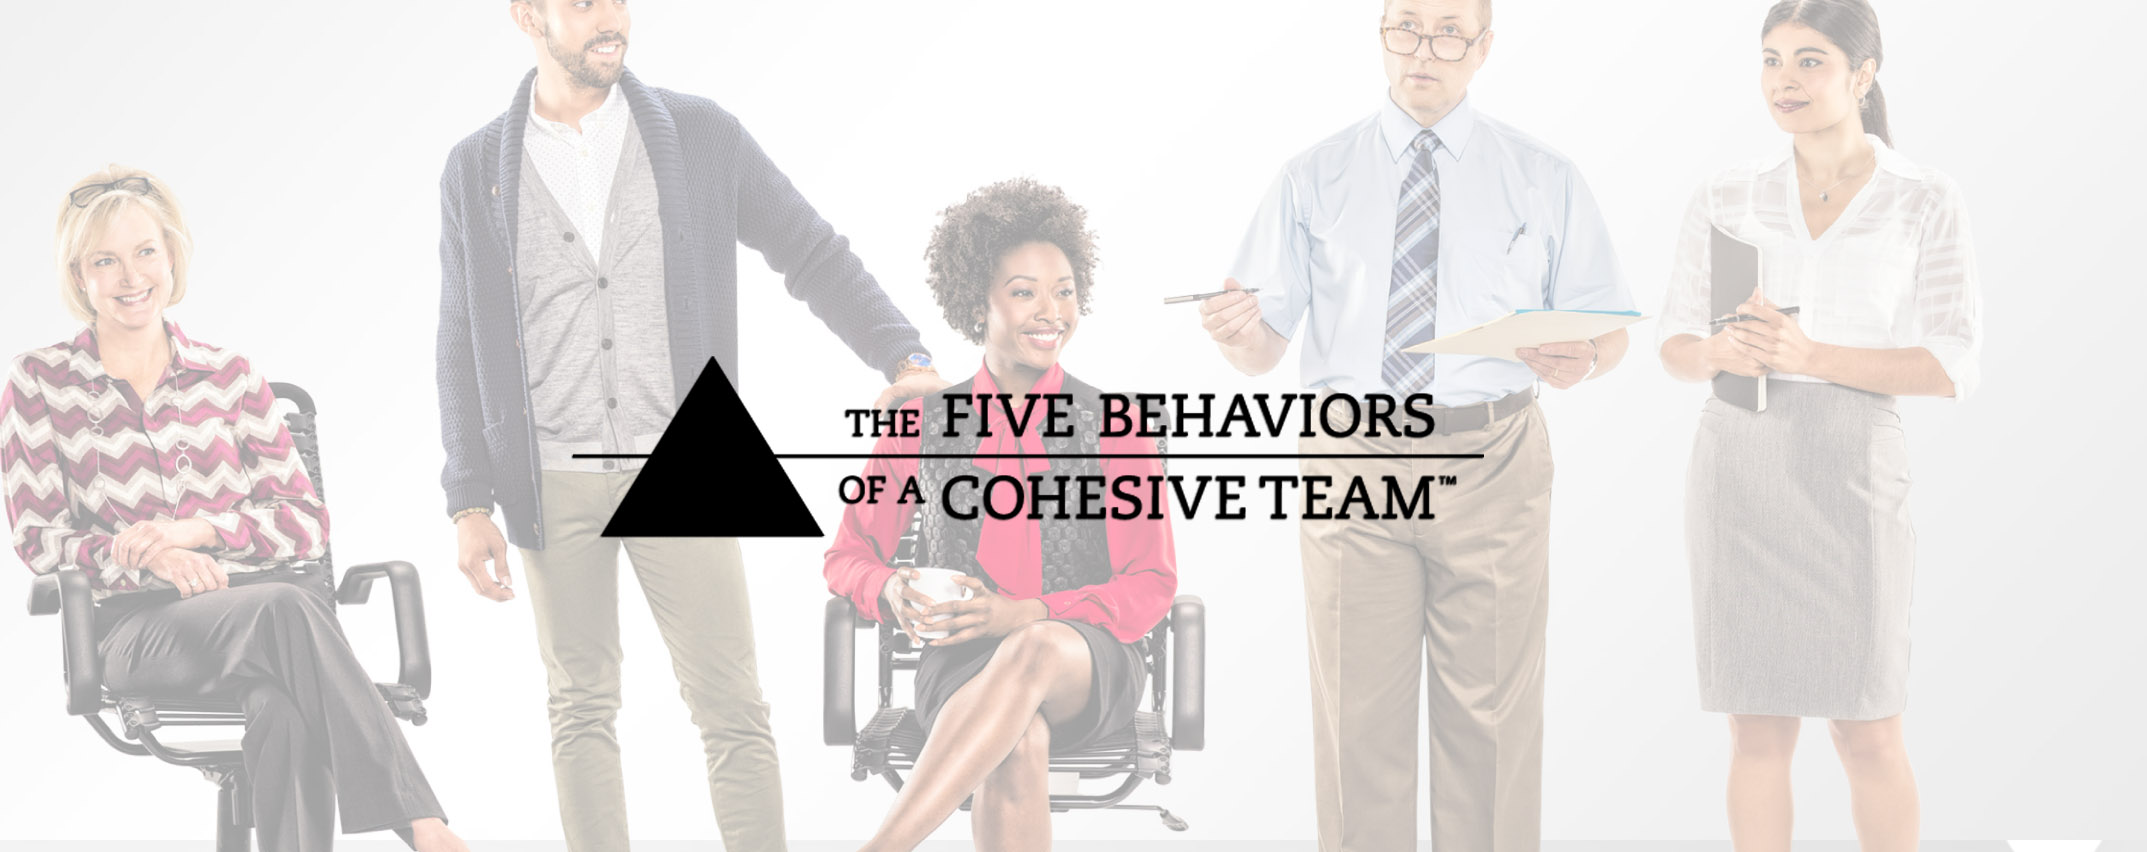 The Five Behaviors™